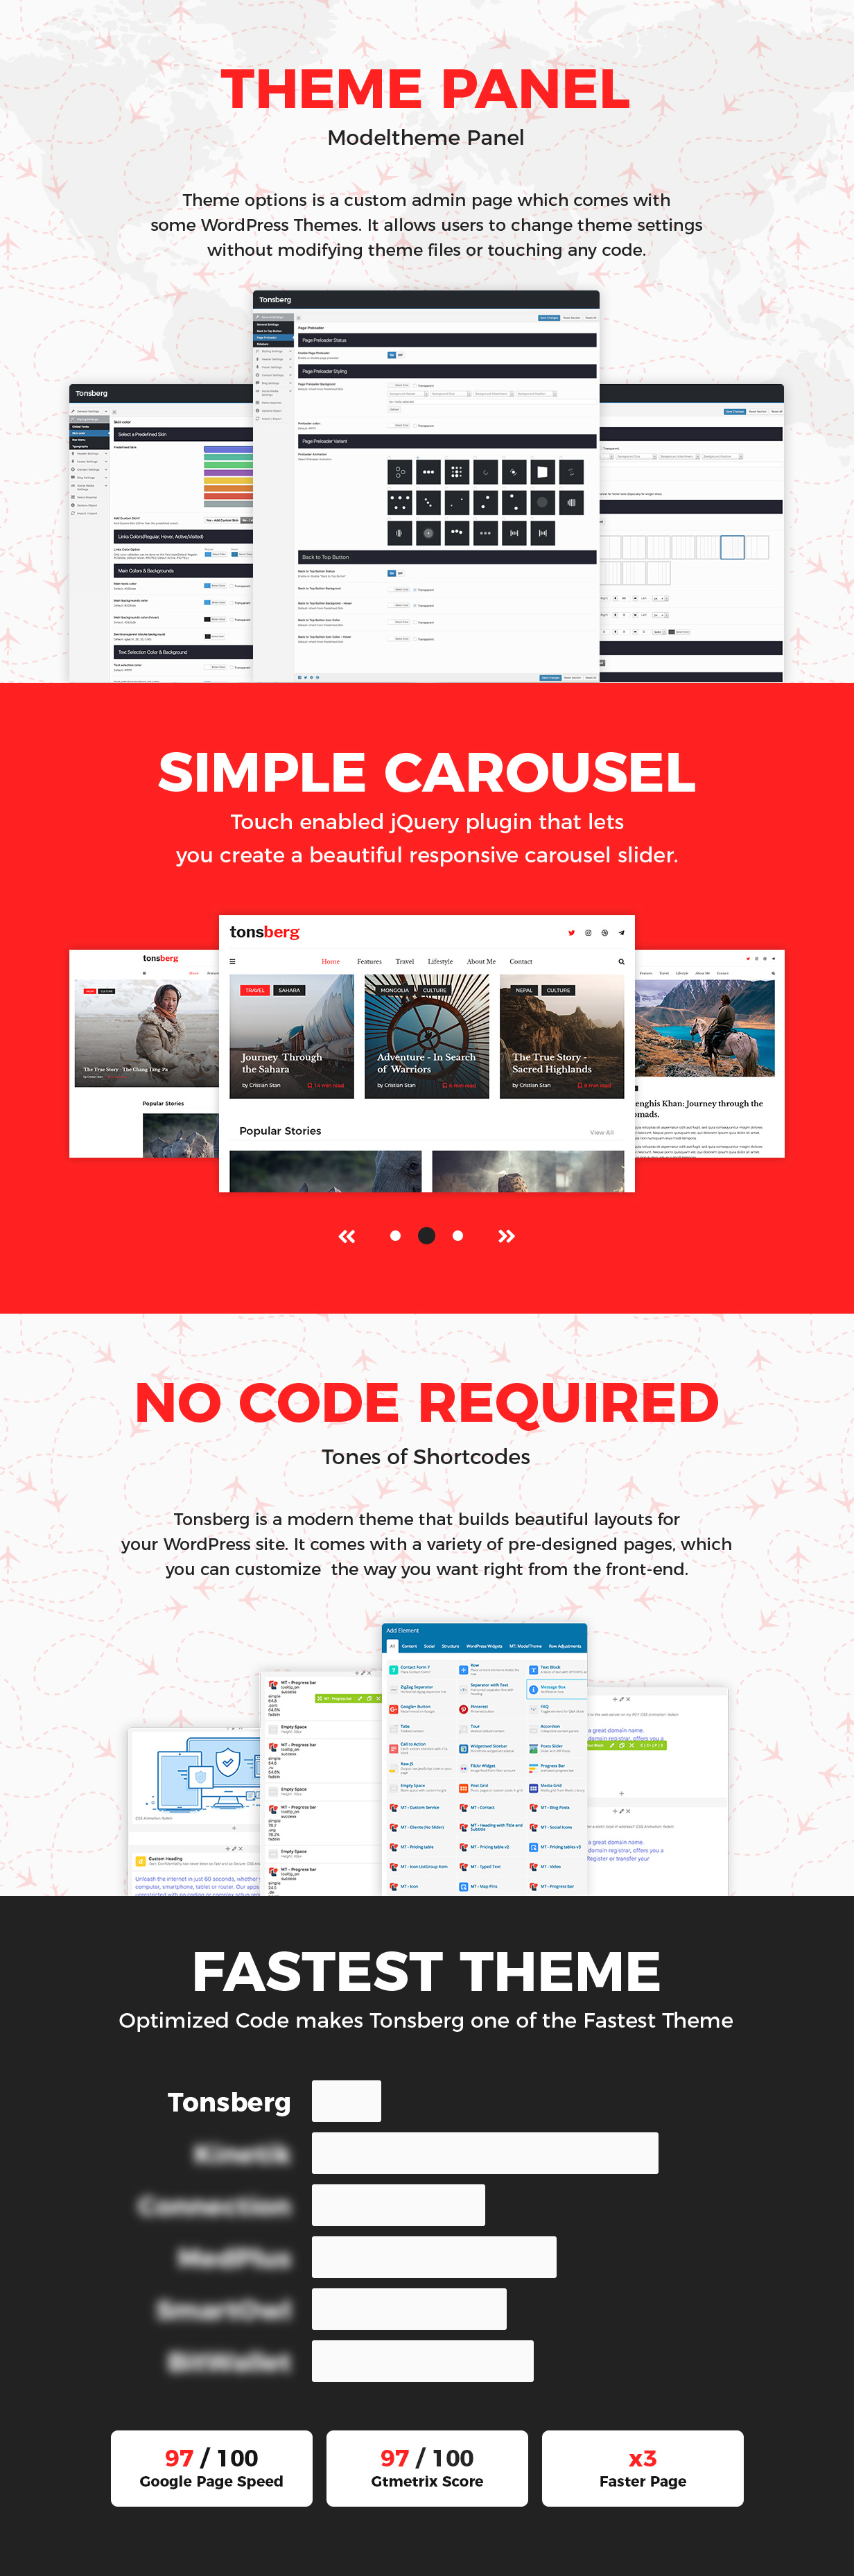 Tonsberg - A Modern WordPress Theme for Travel Bloggers - 5